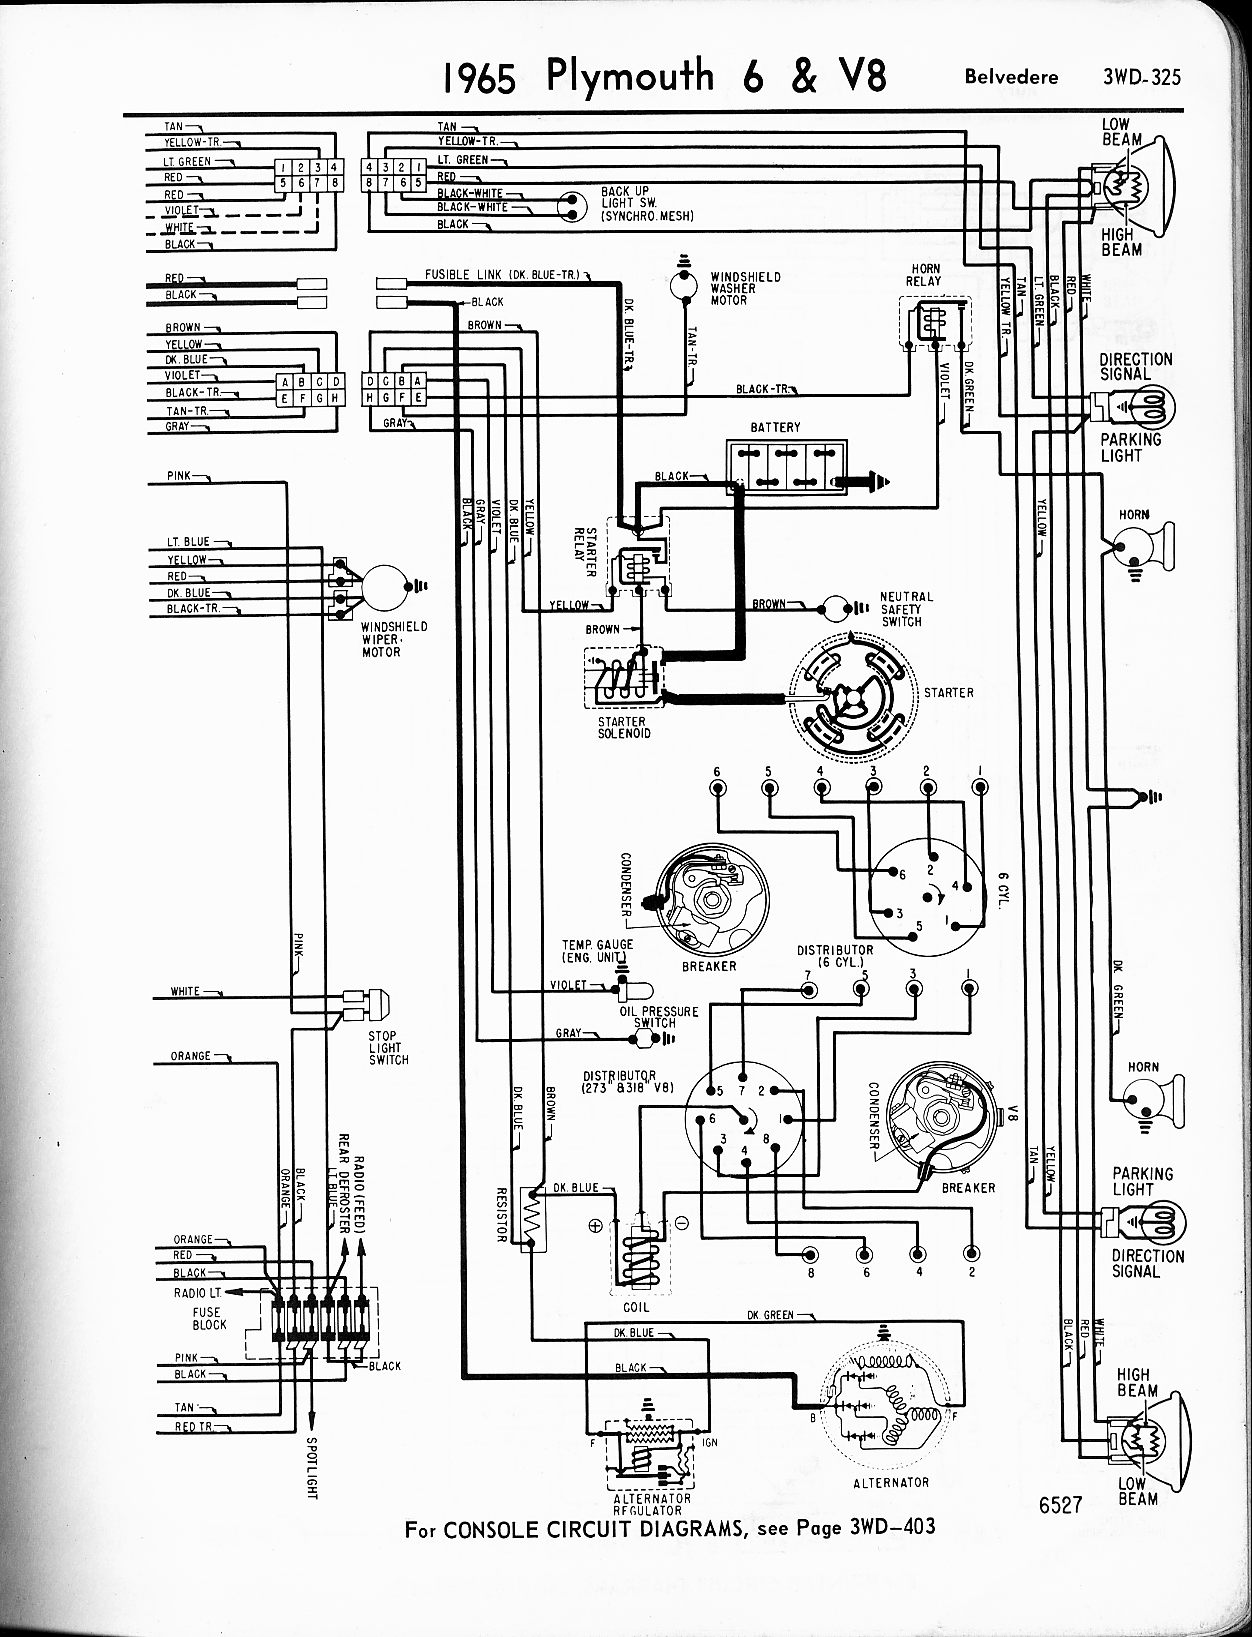 what is the wireing schematic for the wiper switch and wiper